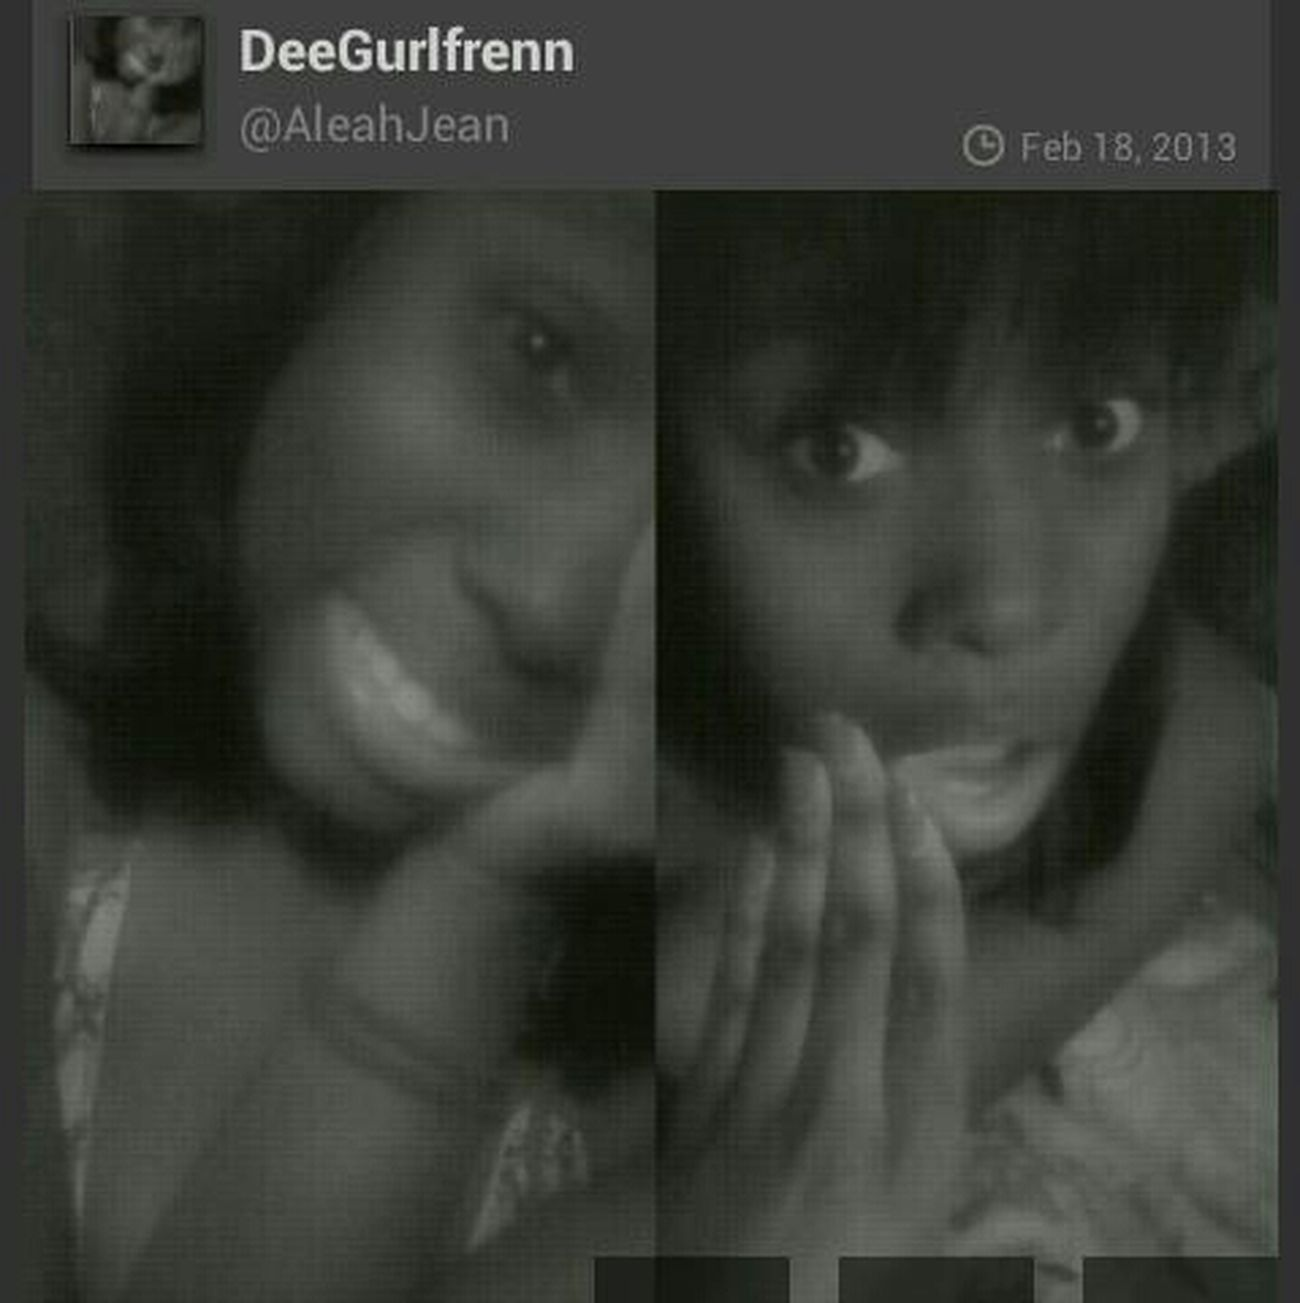 SHOUT TO DeeGurlfrenn ! #SHOUTOUTS #TEAMFOLLOWBACK Shout Out To This Cutie , Follow Her !!!!! Shout Out @AleahJean